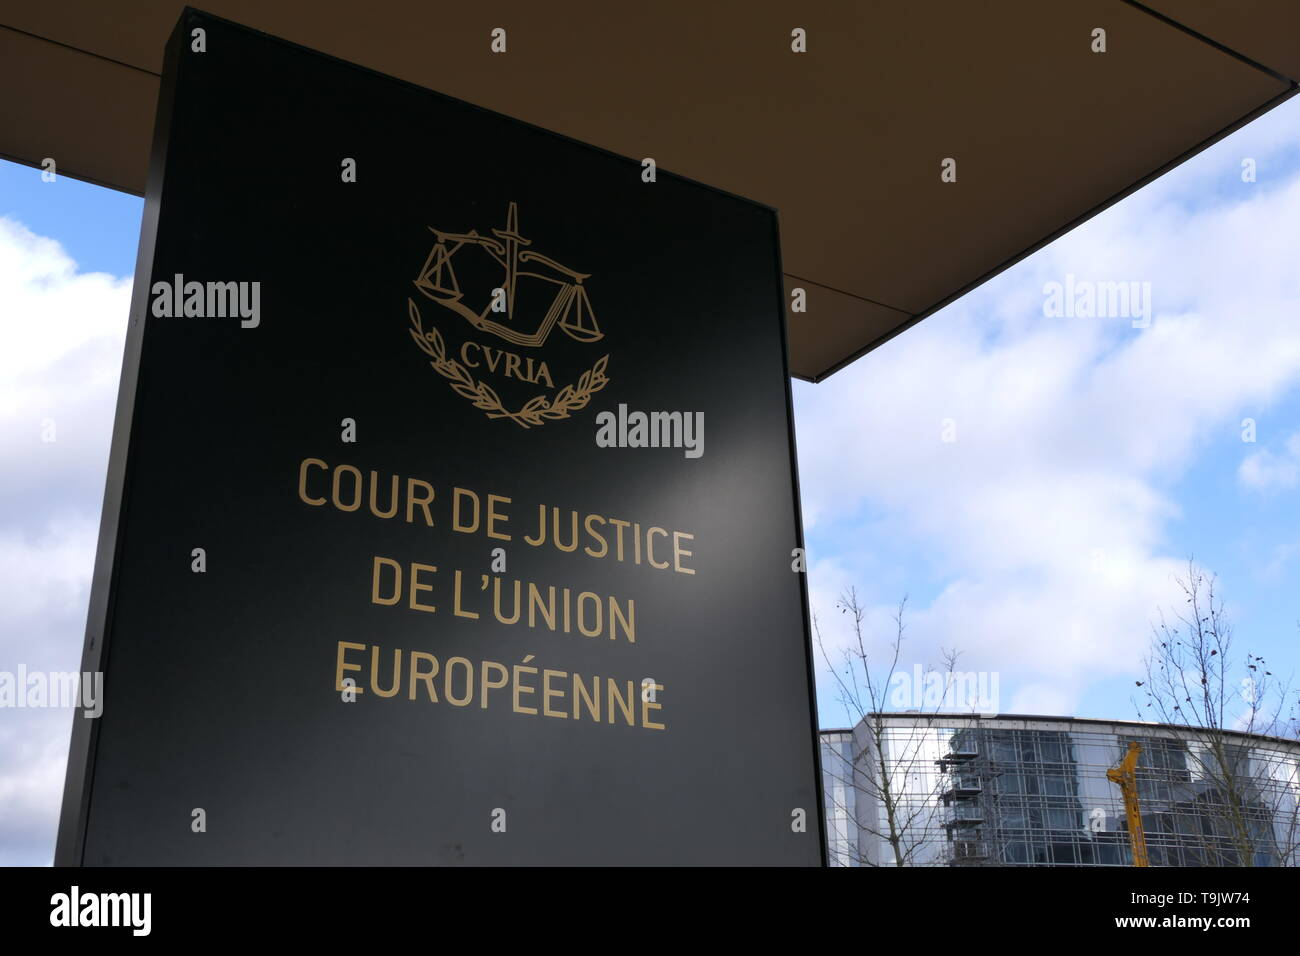 Court of Justice of the European Union (CVRIA) Luxembourg - Stock Image